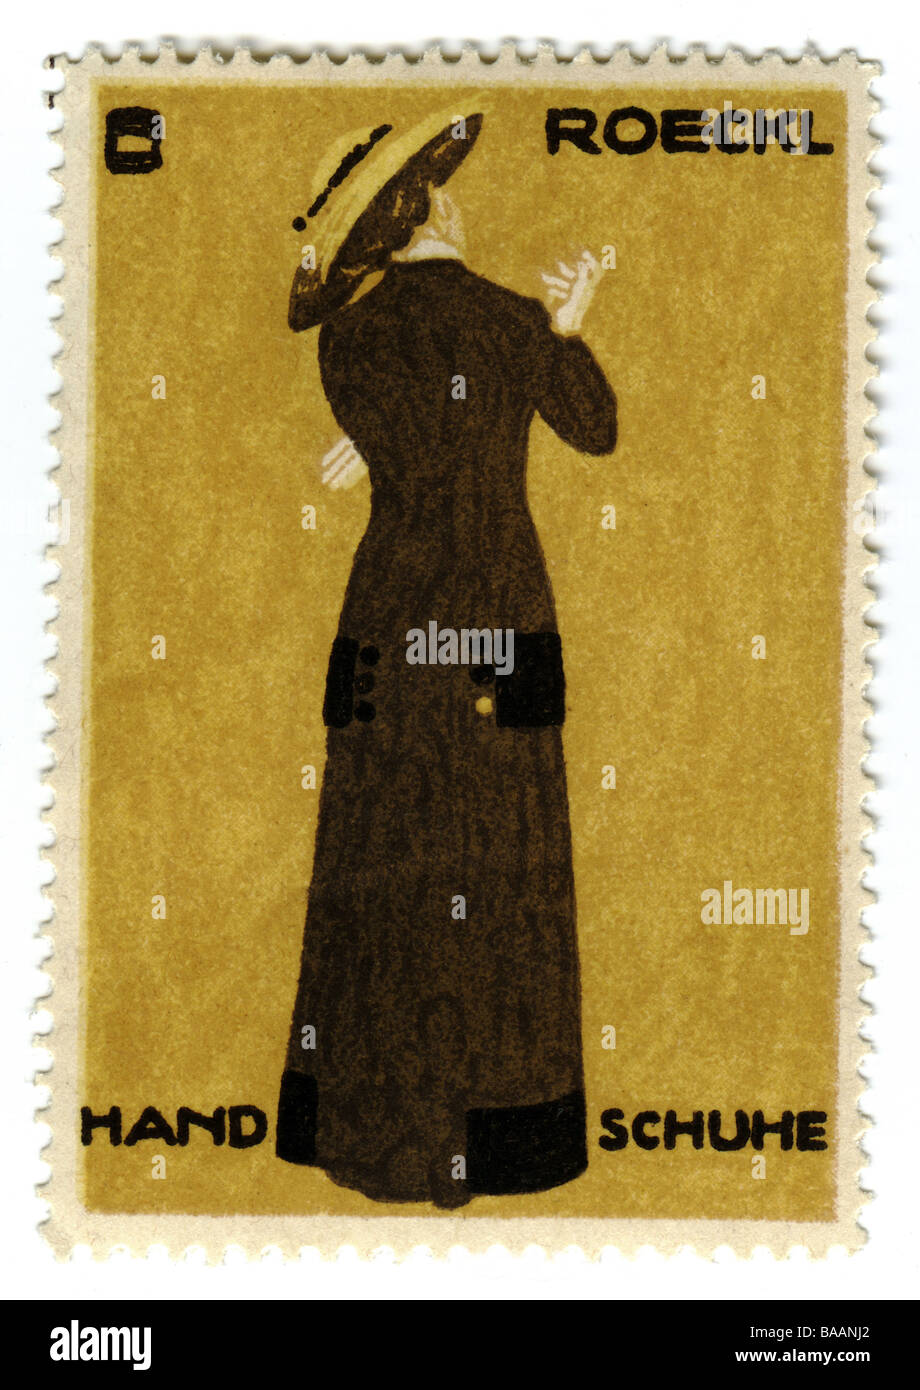 advertising, stamps, 'Roeckl Handschuhe', Germany, circa 1910,historic, historical, stamp, clipping, gloves, - Stock Image